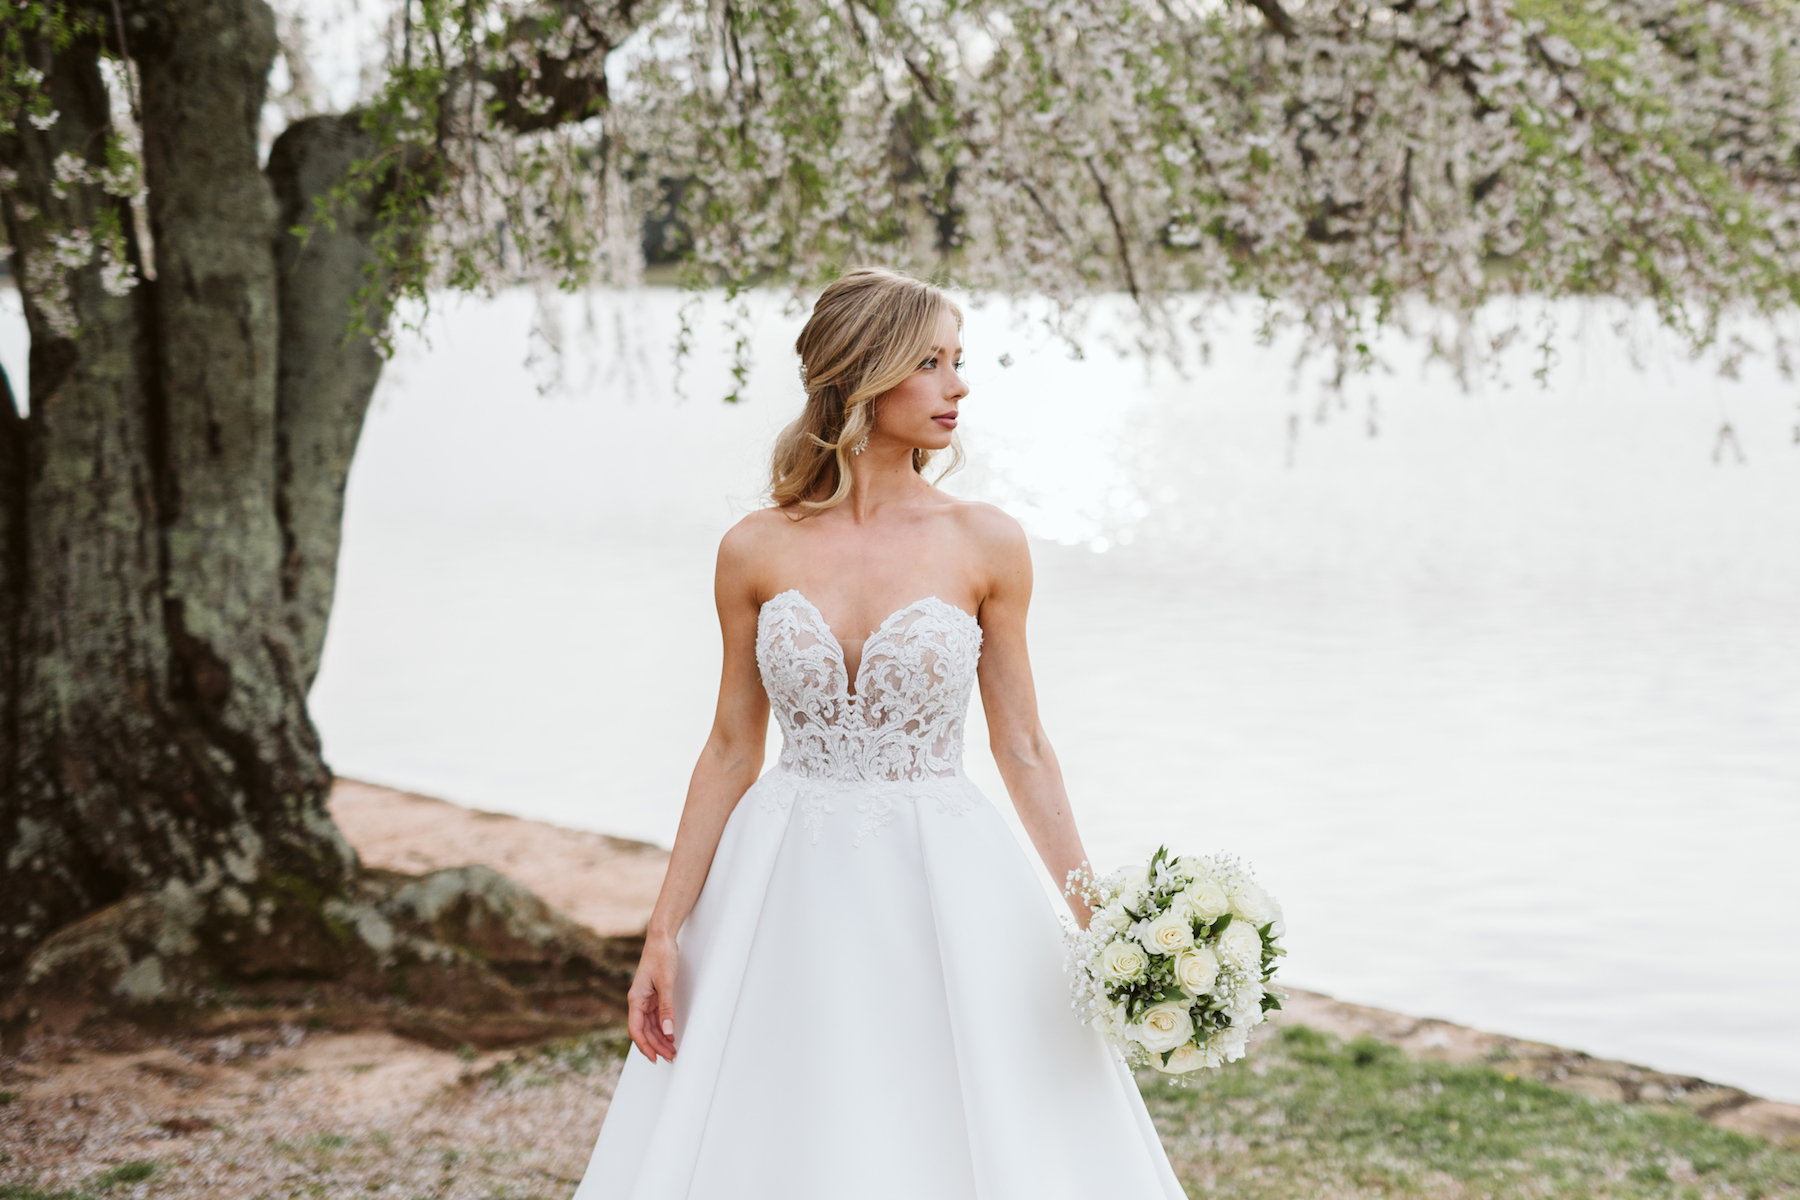 furman-university-bridals-paige-202.JPG